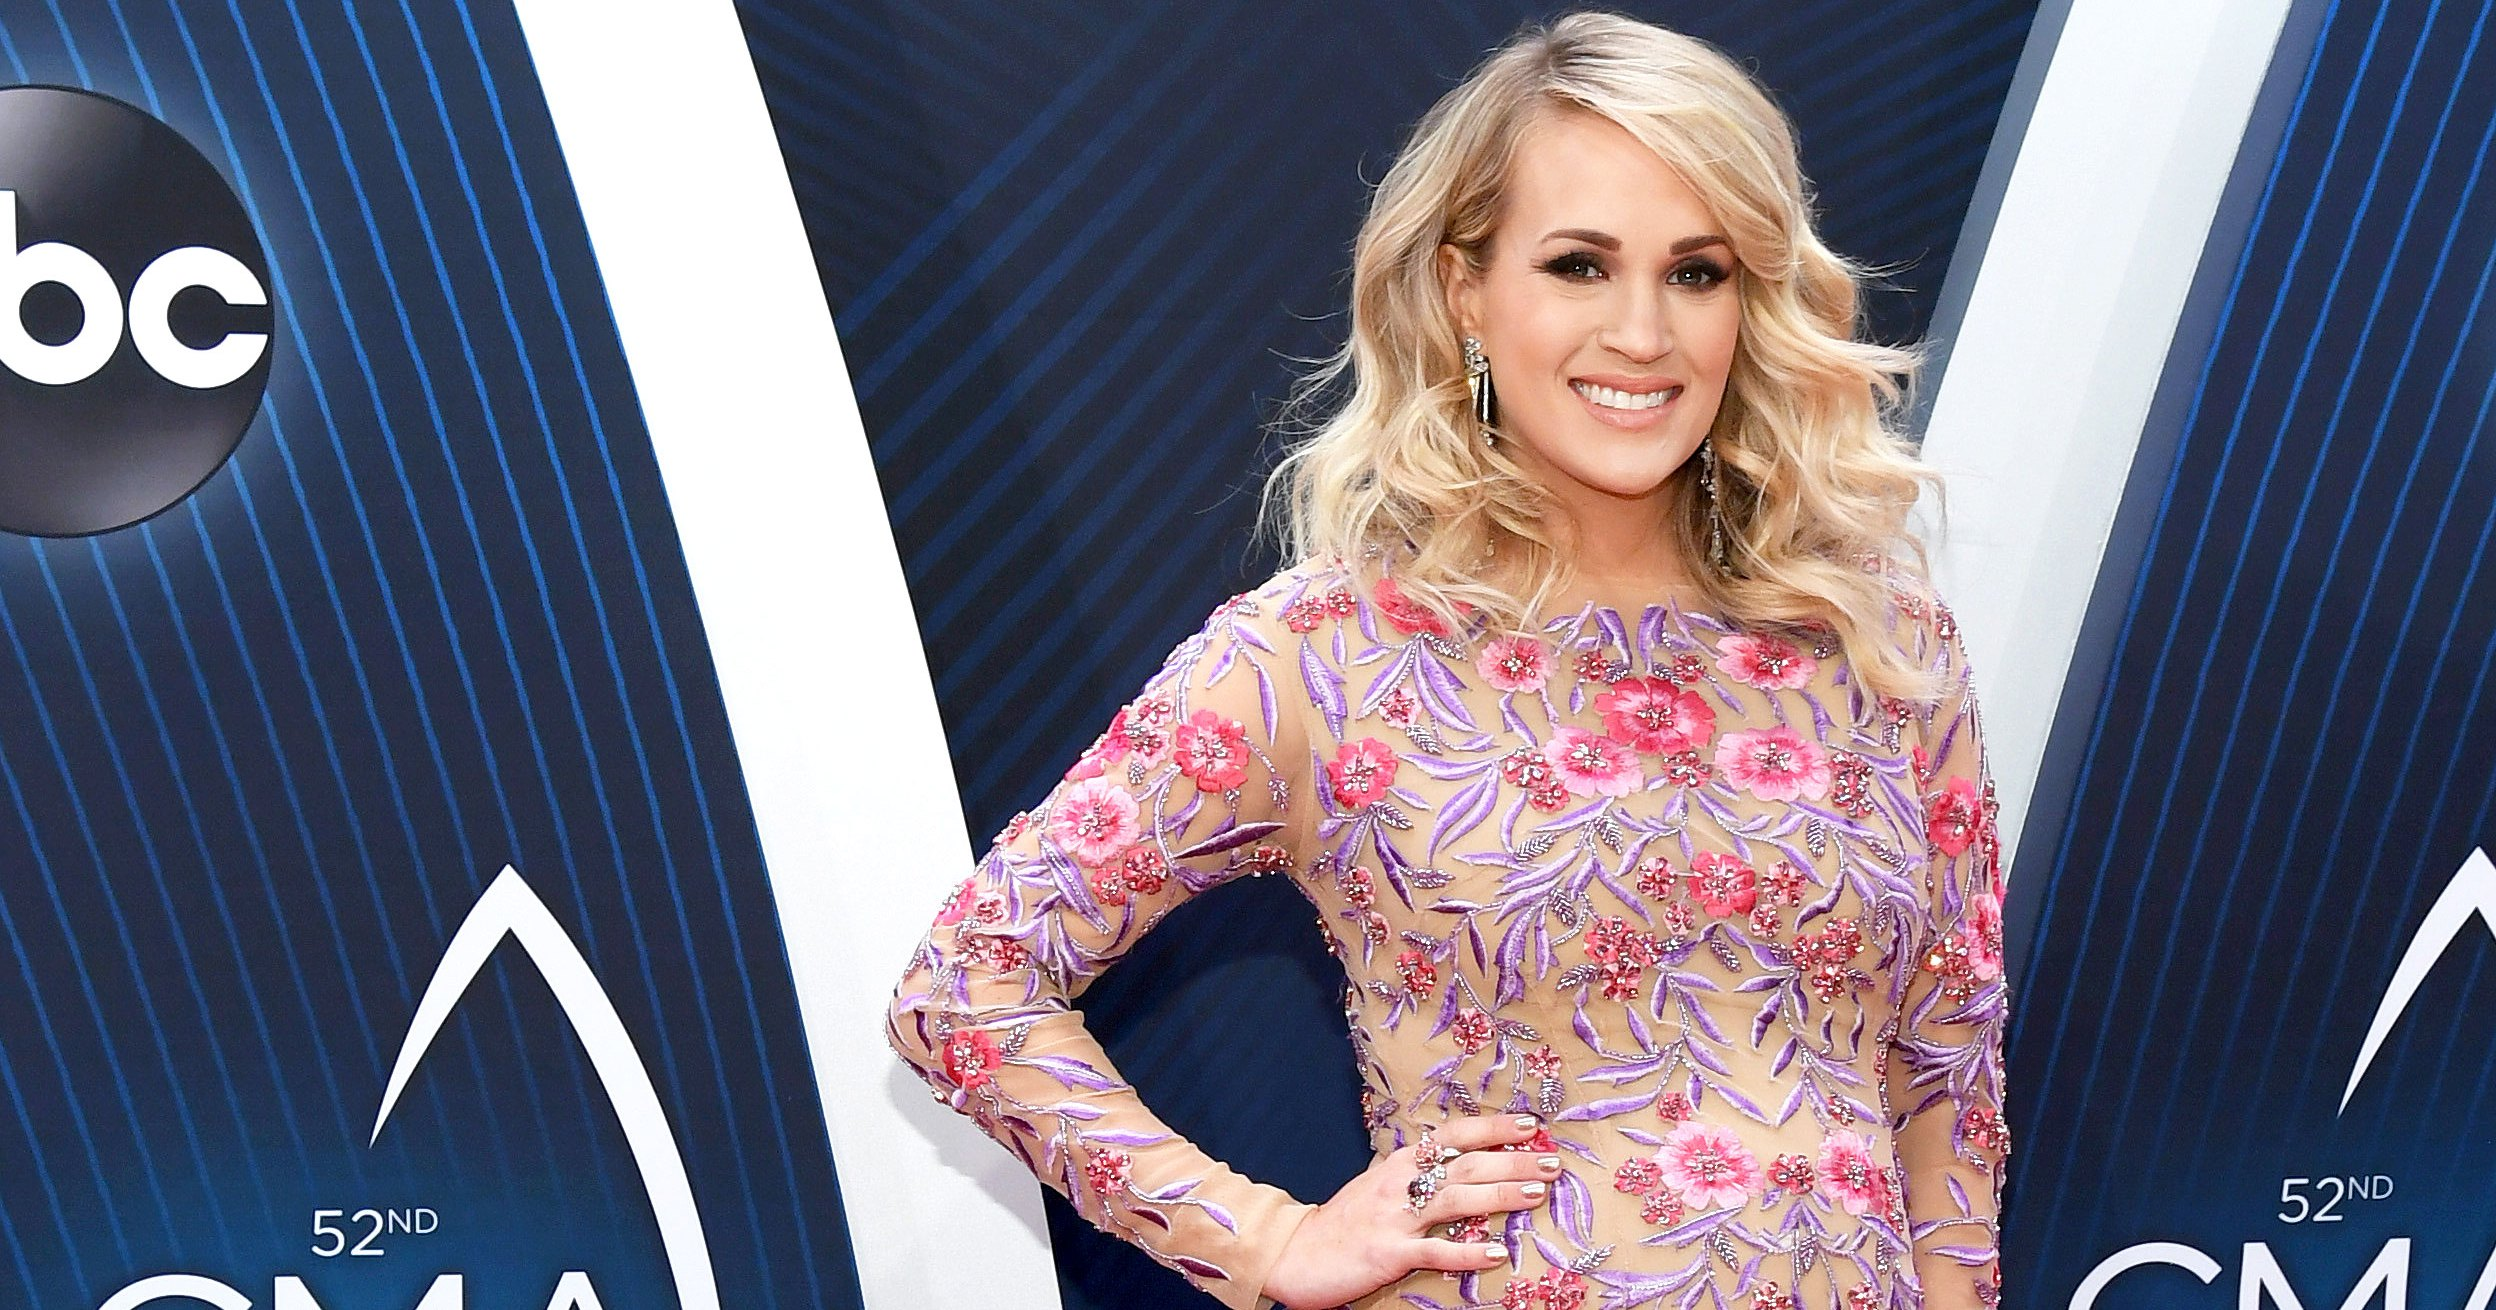 Pregnant Carrie Underwood 'Stretched Out' CMAs Dresses